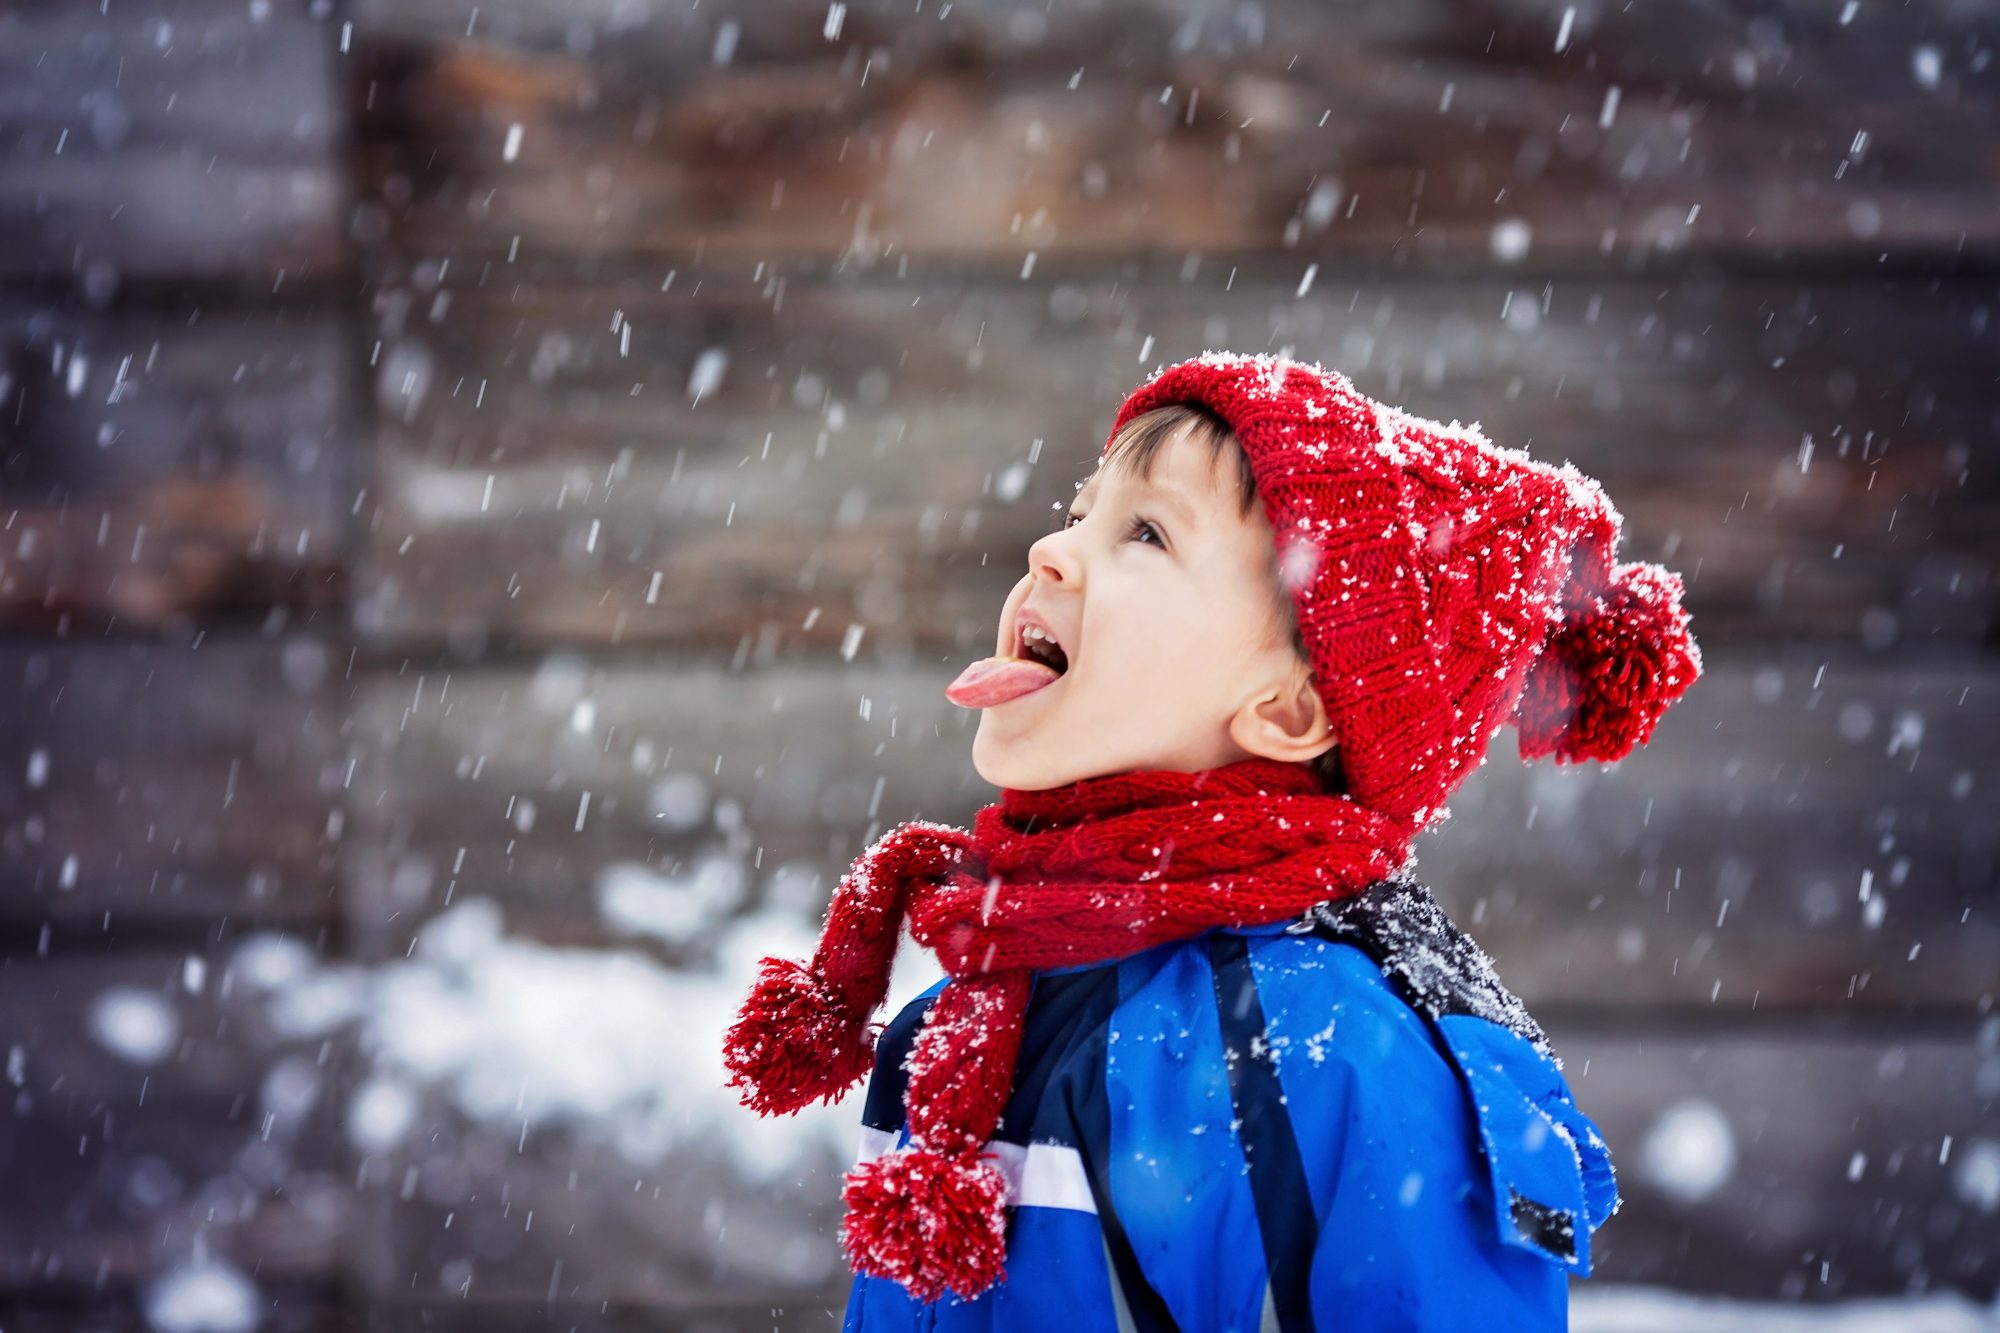 Boy Catching Snowflakes on his Tongue